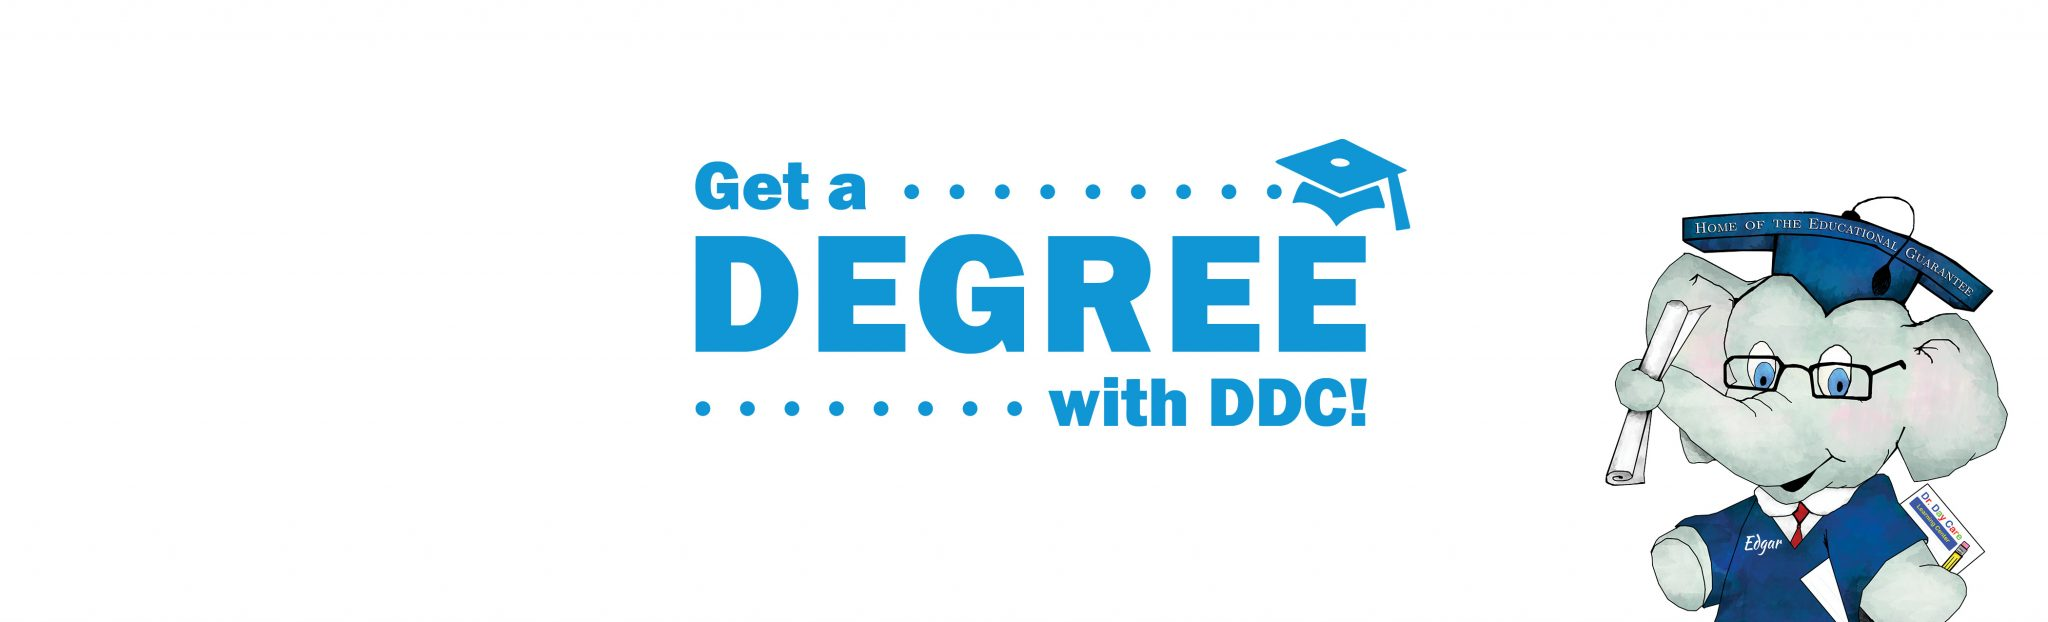 Get a DEGREE with DDC